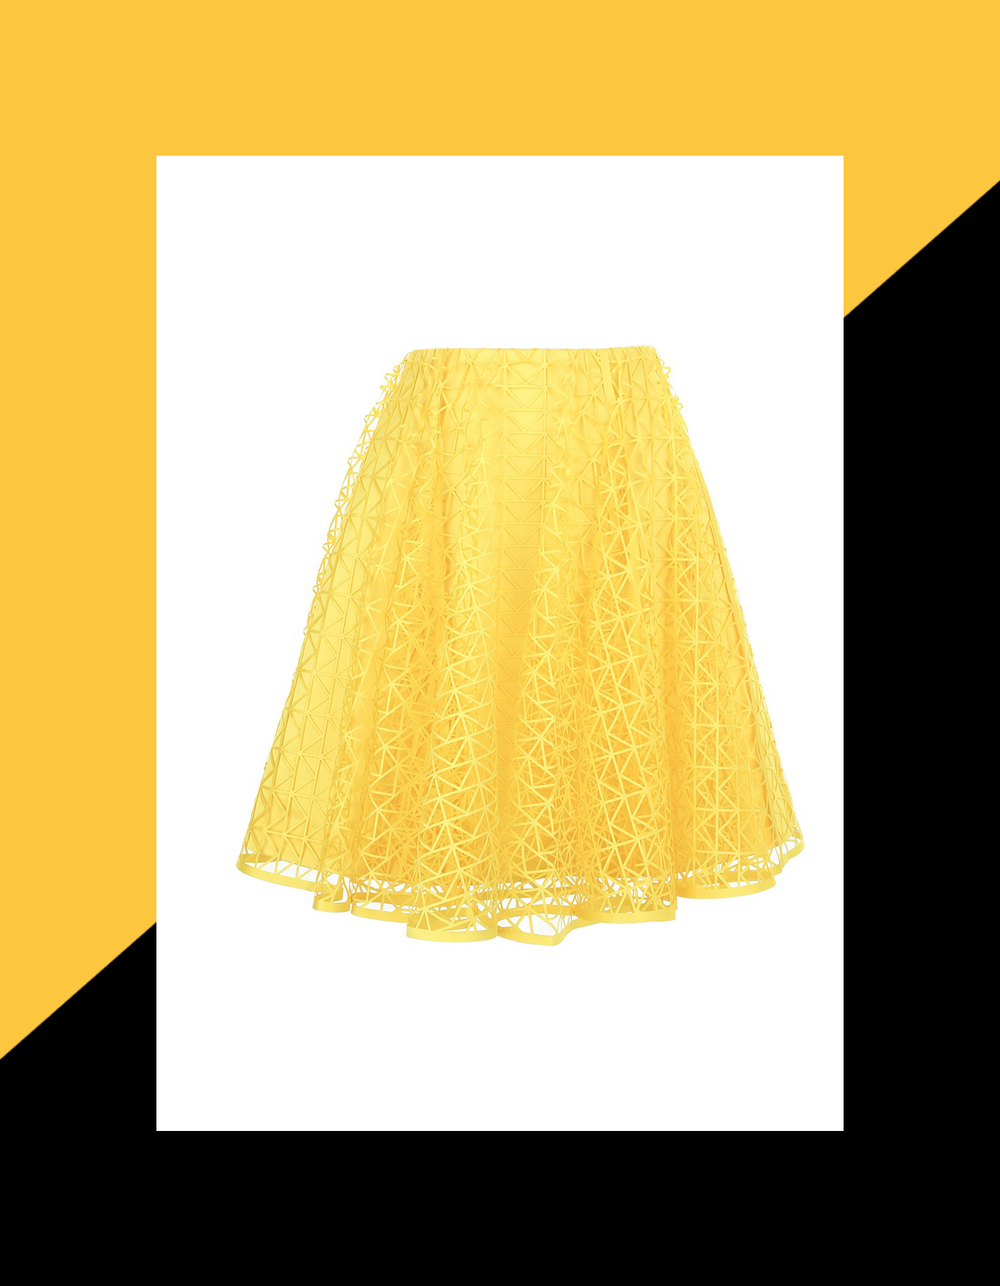 Paskal-Clothing-Maison-Mittweg-Fashion-Yellow-Skirt